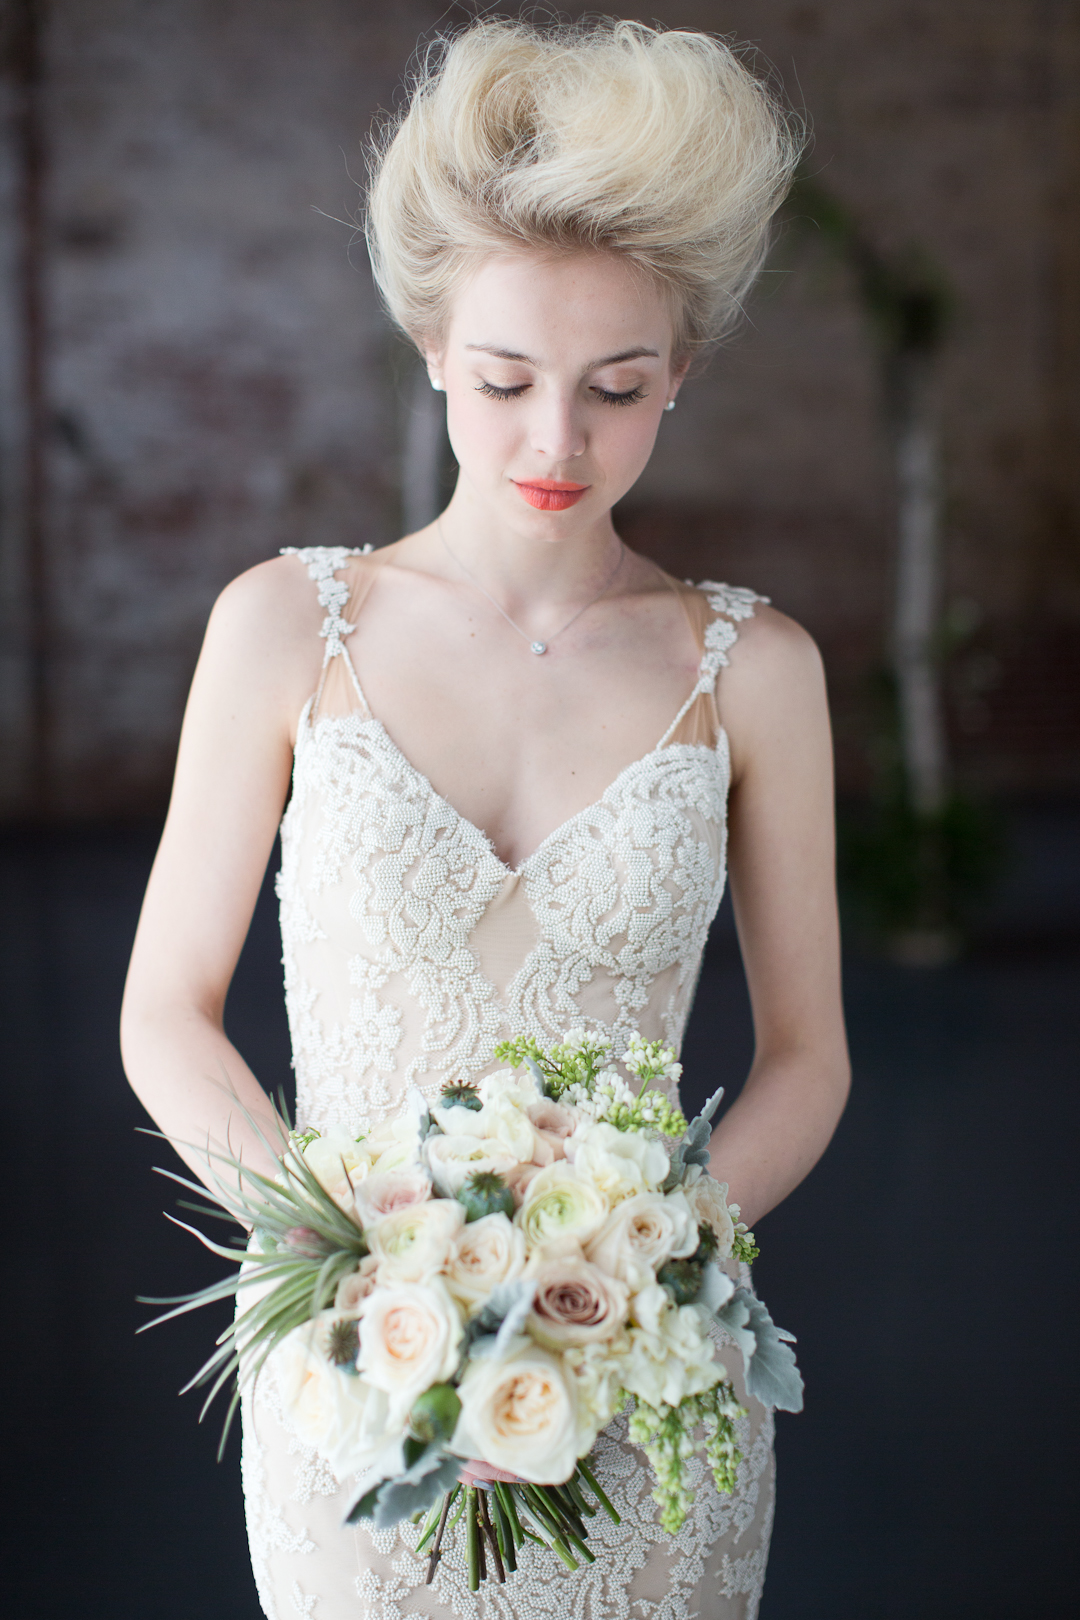 melissa kruse photography - bubbly bride styled shoot (the green building brooklyn) final web-358.jpg